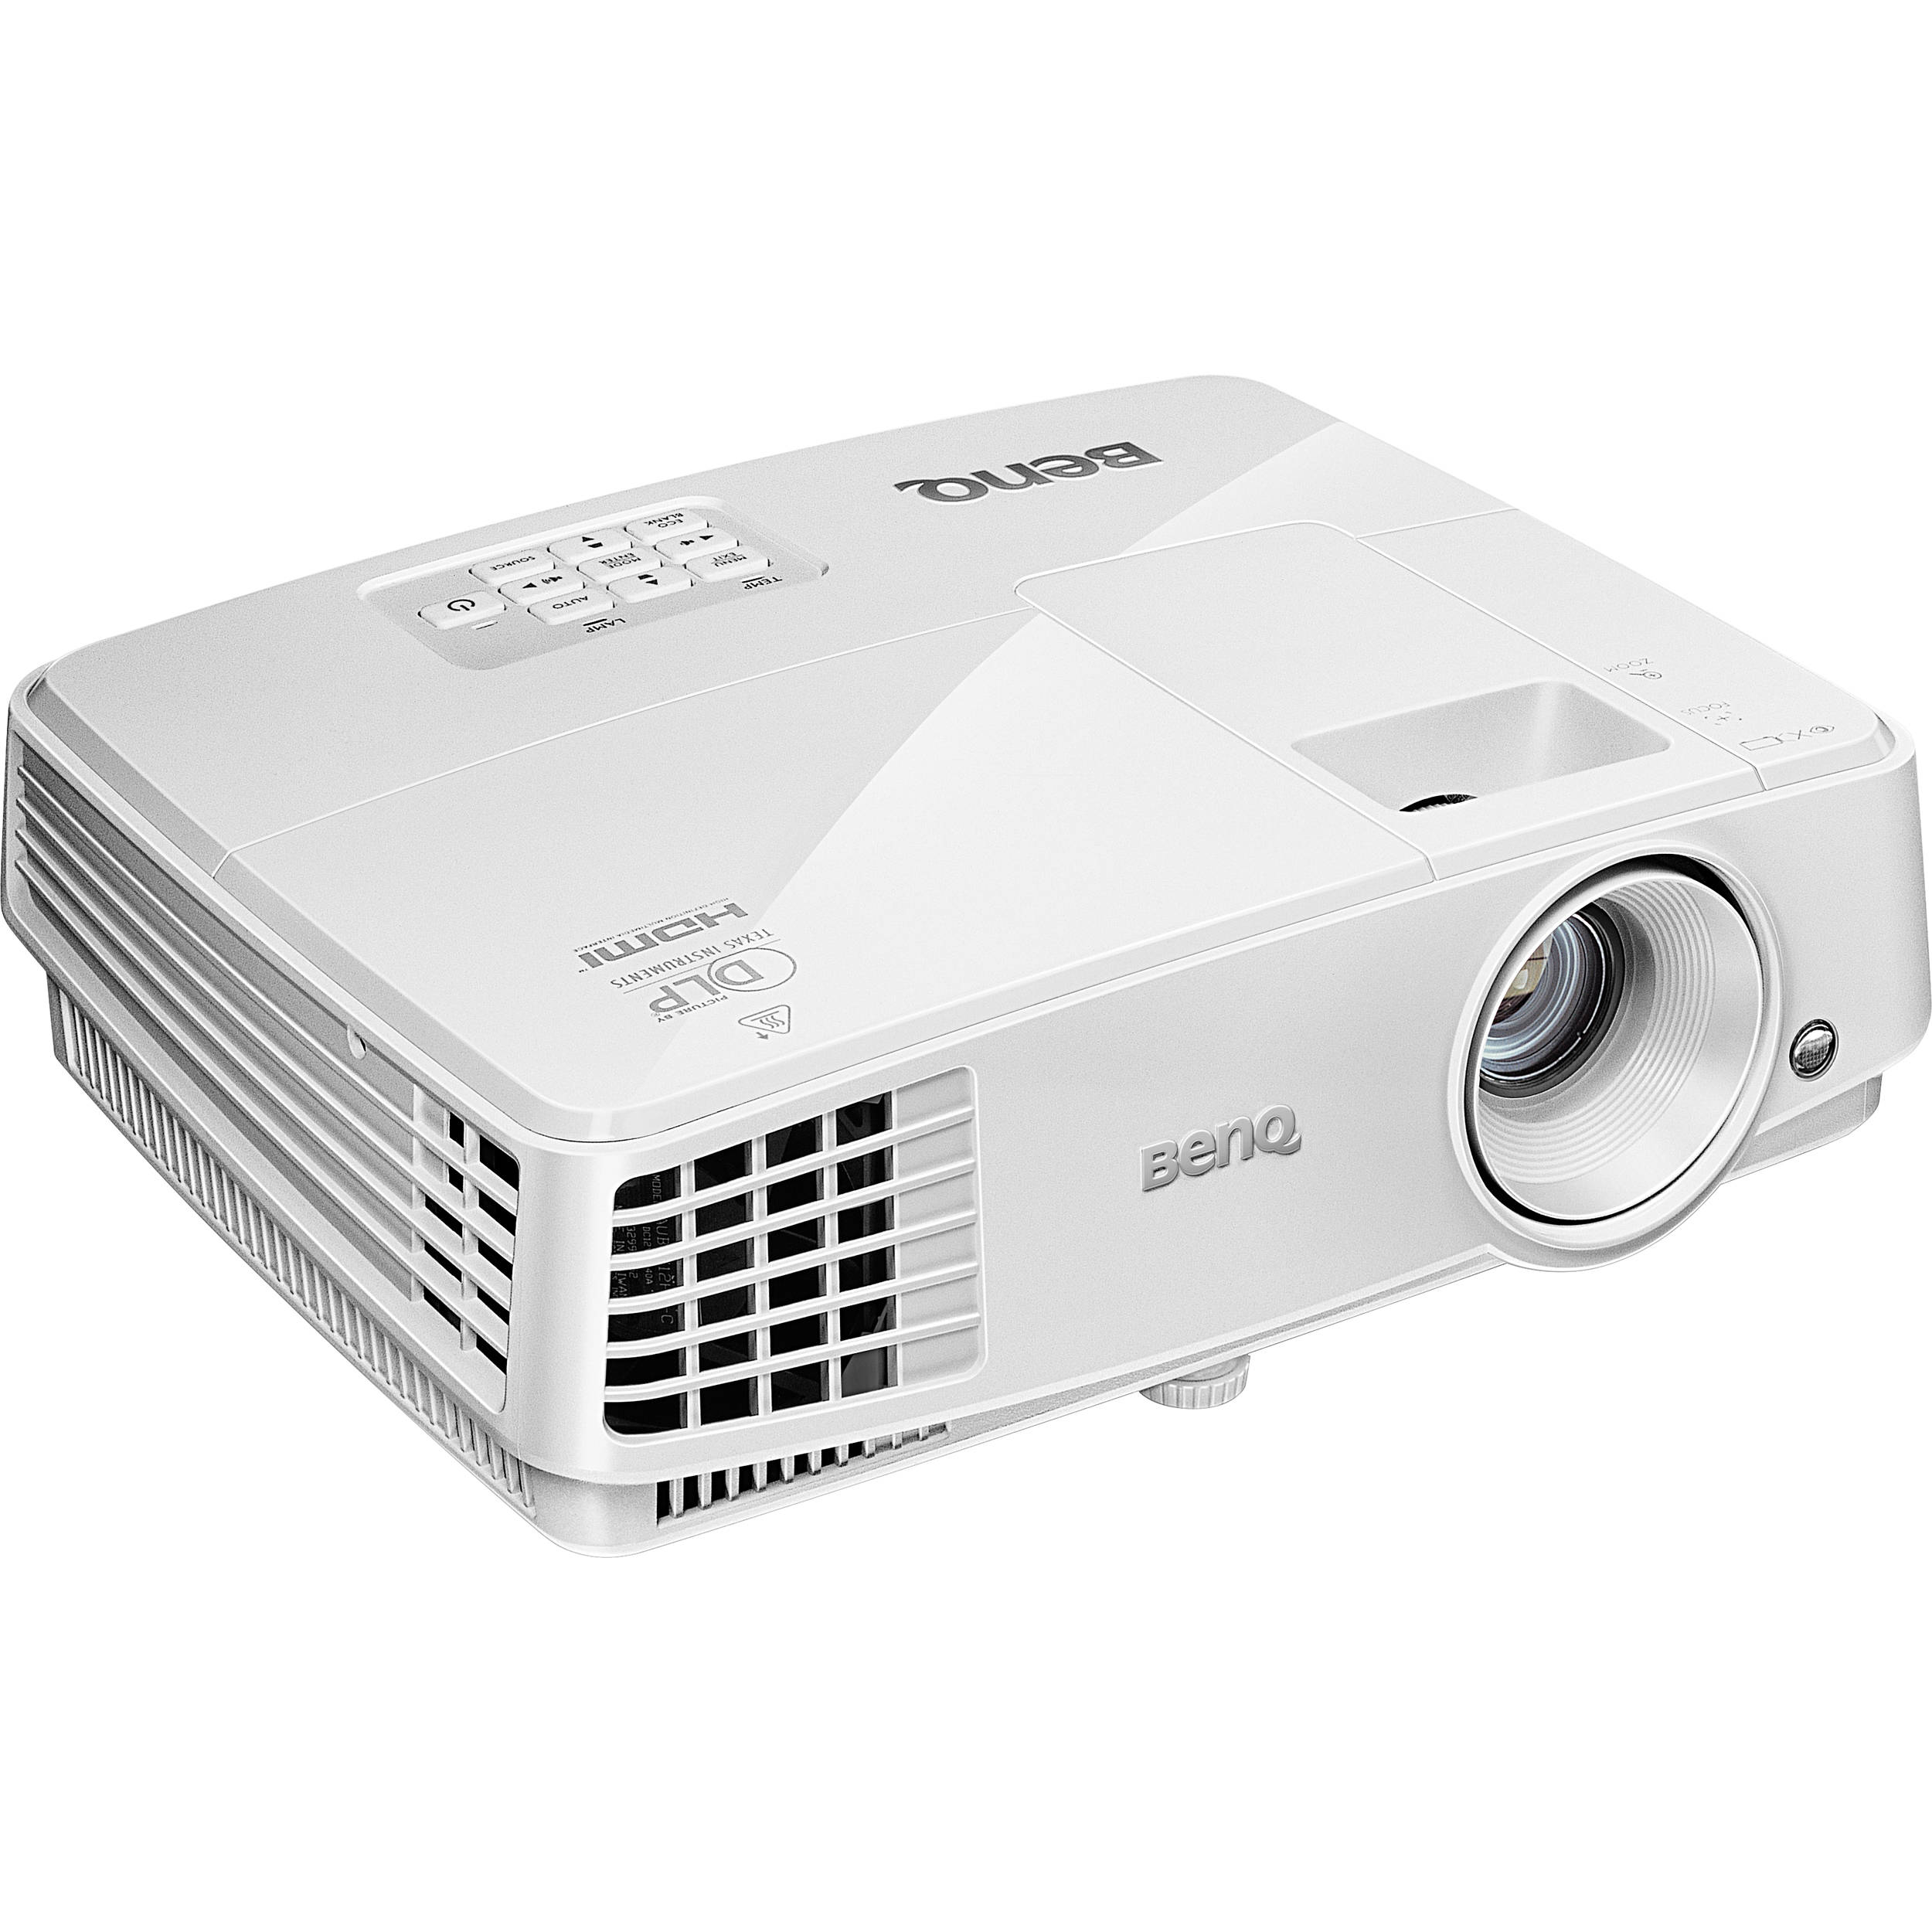 Benq Projector MX525      1024 x 768 Resolution, 3200 ANSI Lumens, 13000:1 Contrast Ratio,  HDMI, D-Sub, RCA, S-Video, Inputs, Remote control